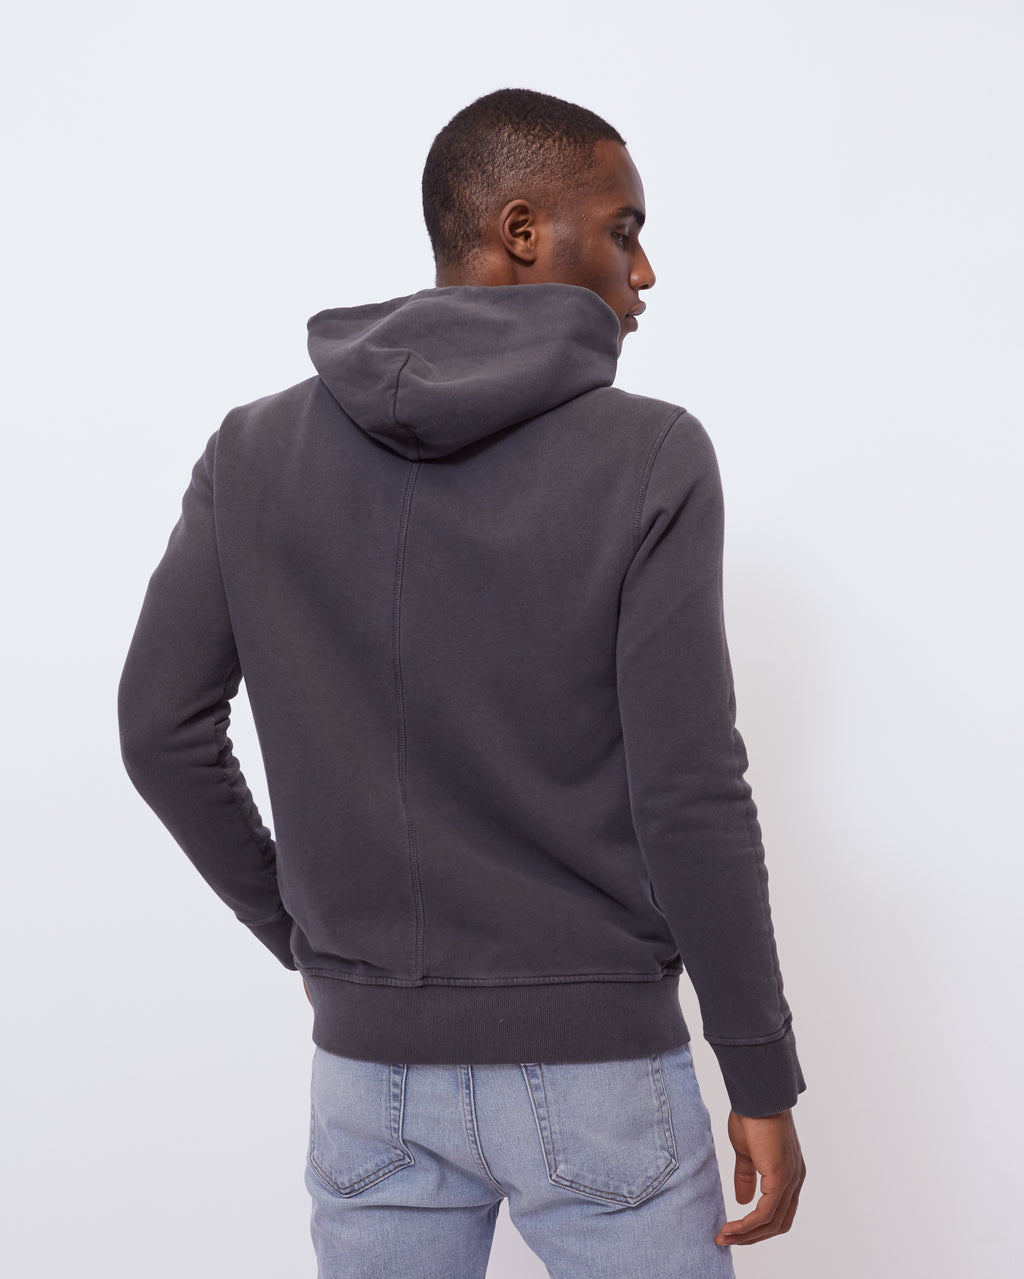 The Asher Hoodie in Vintage Black